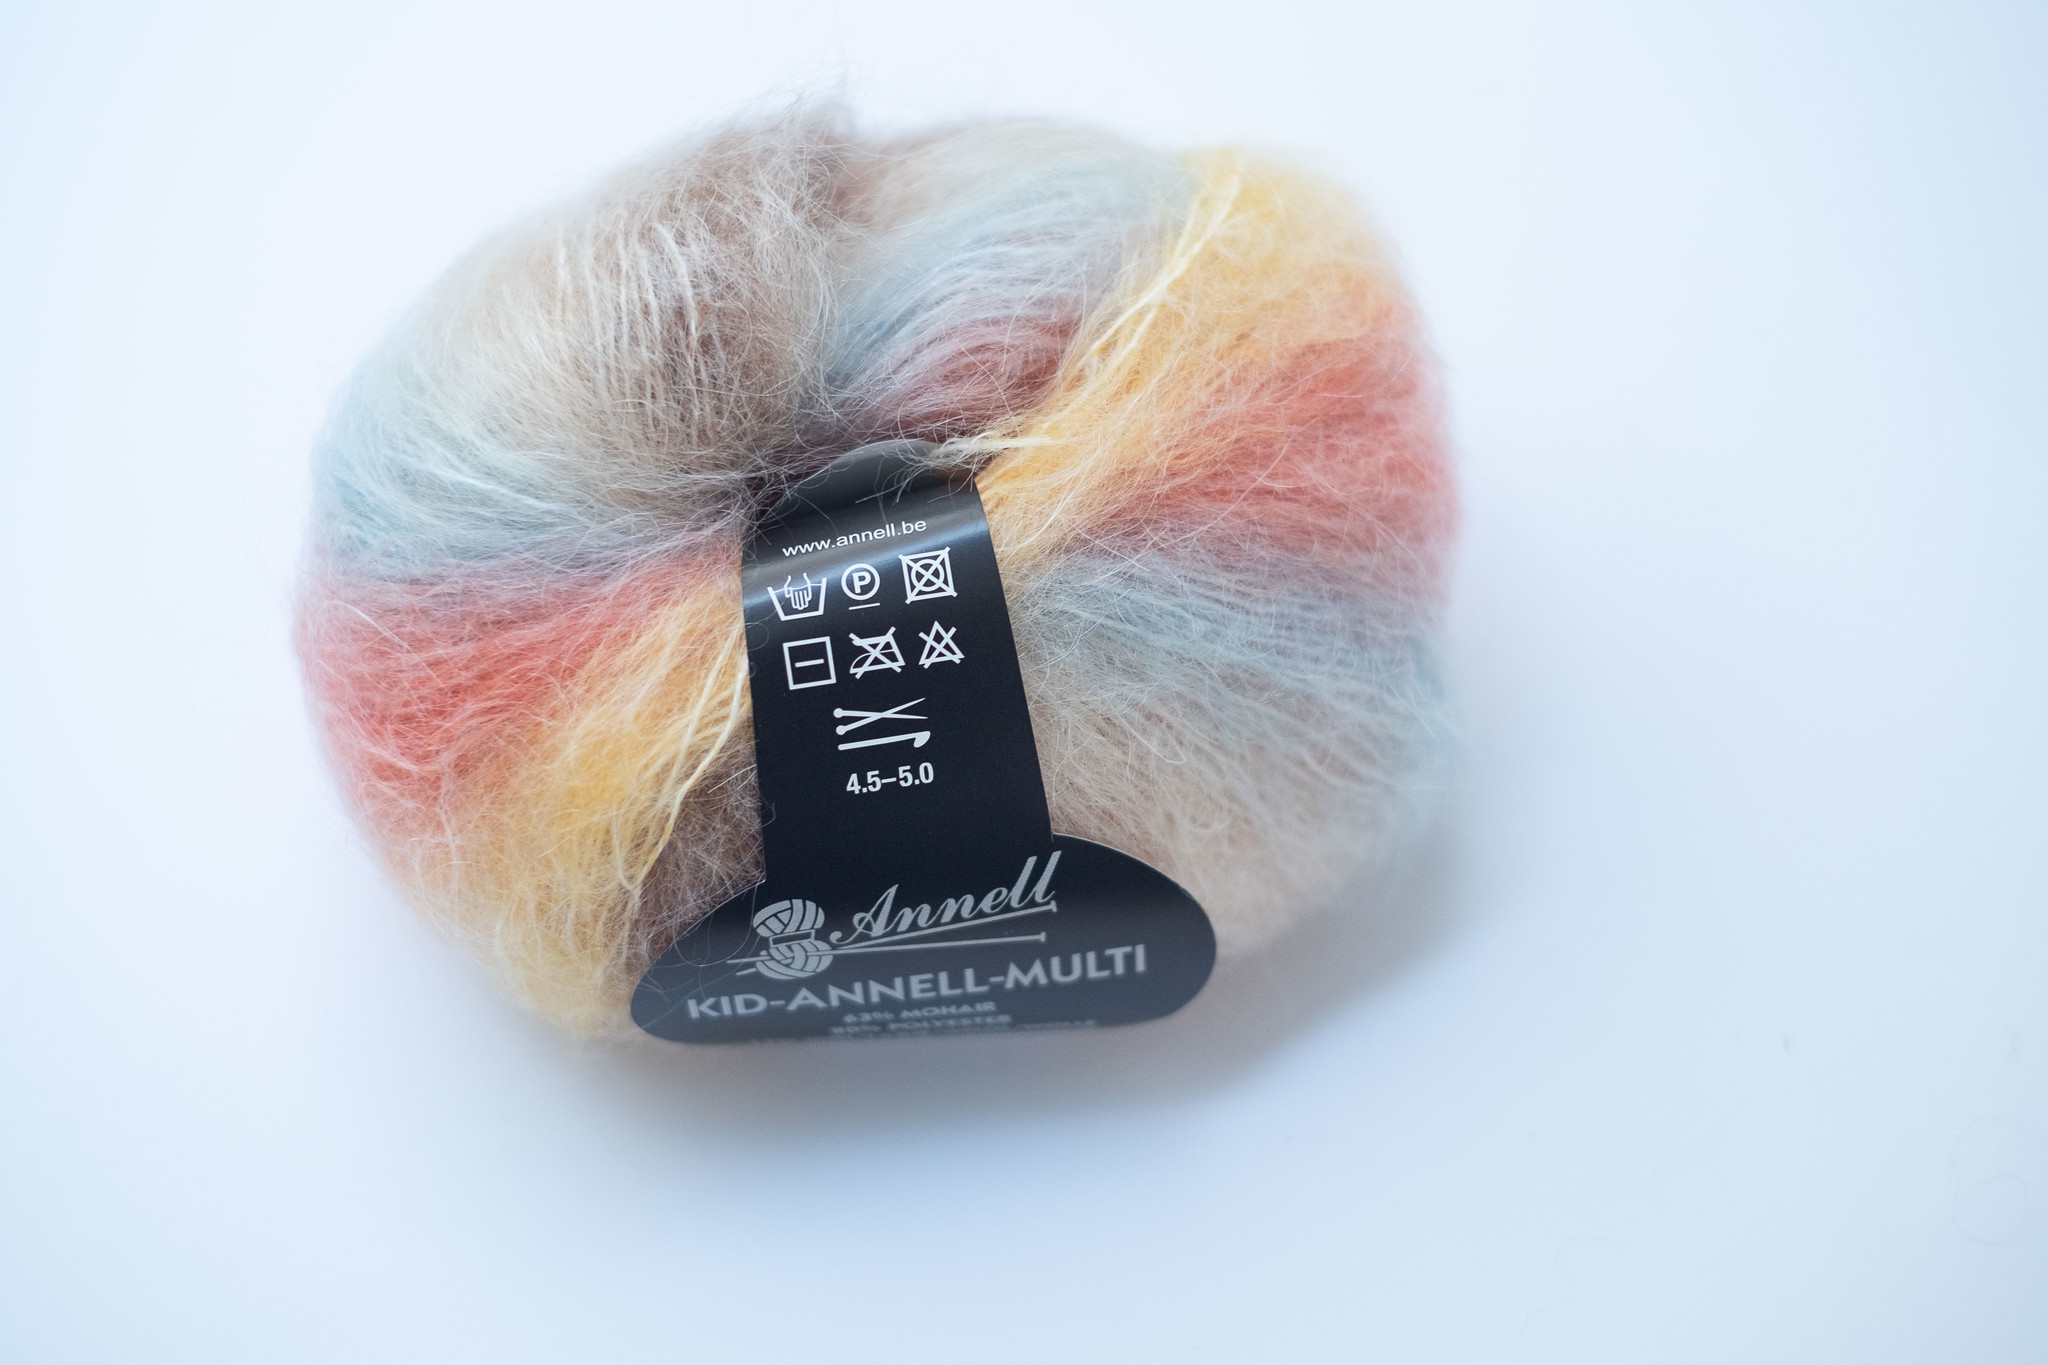 Annell Kid-Annell - multicolor 3186